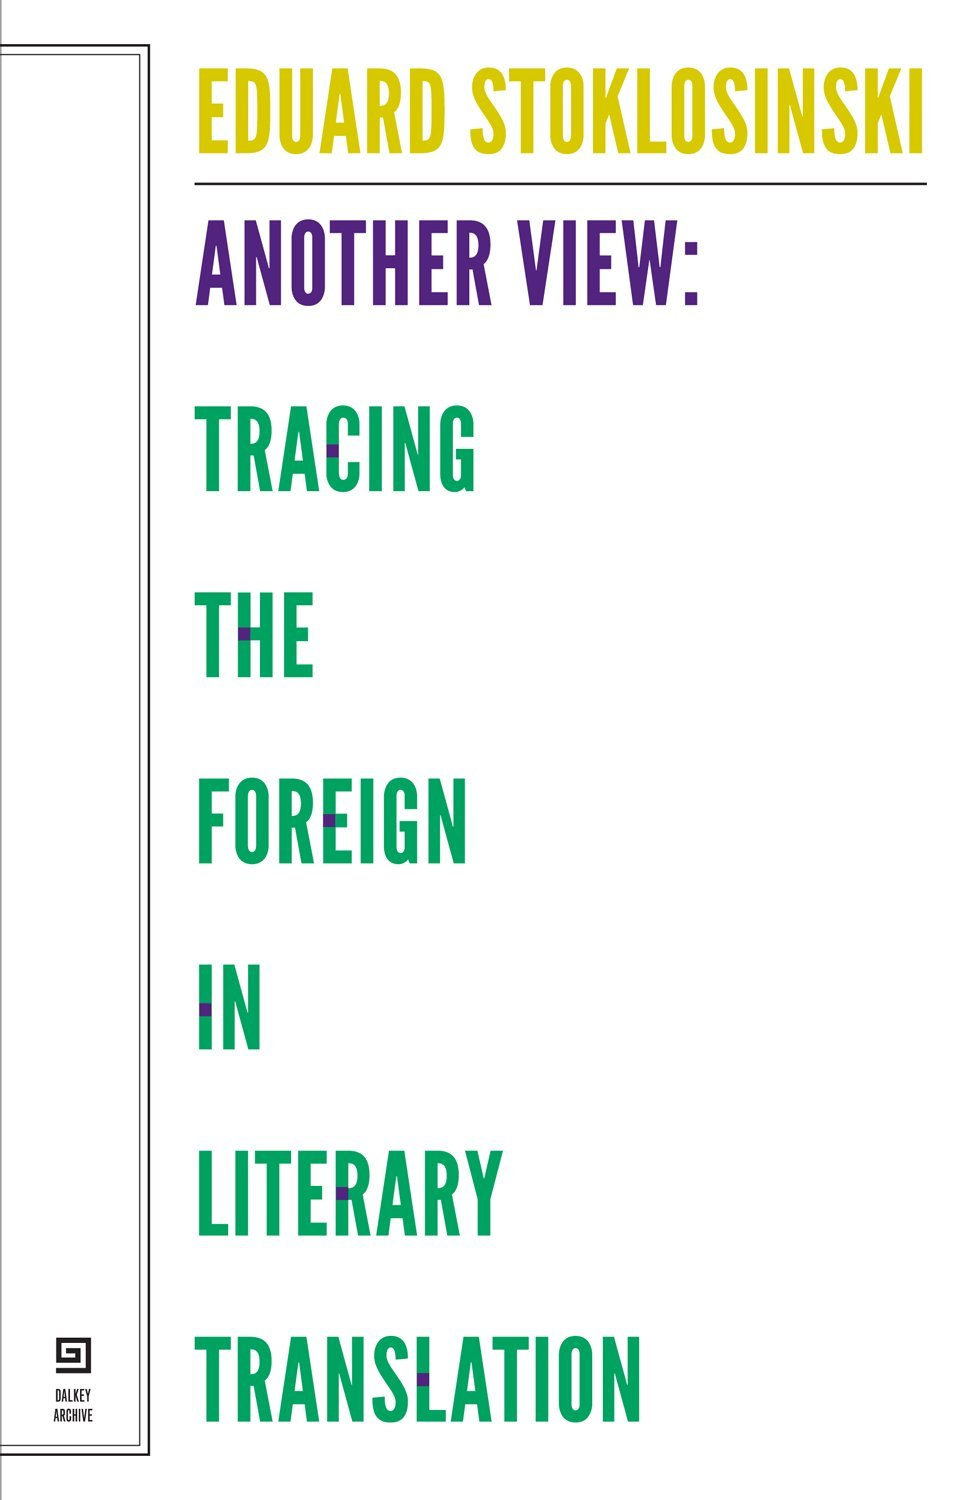 E. Stoklosinski, Another View: Tracing the Foreign in Literary Translation